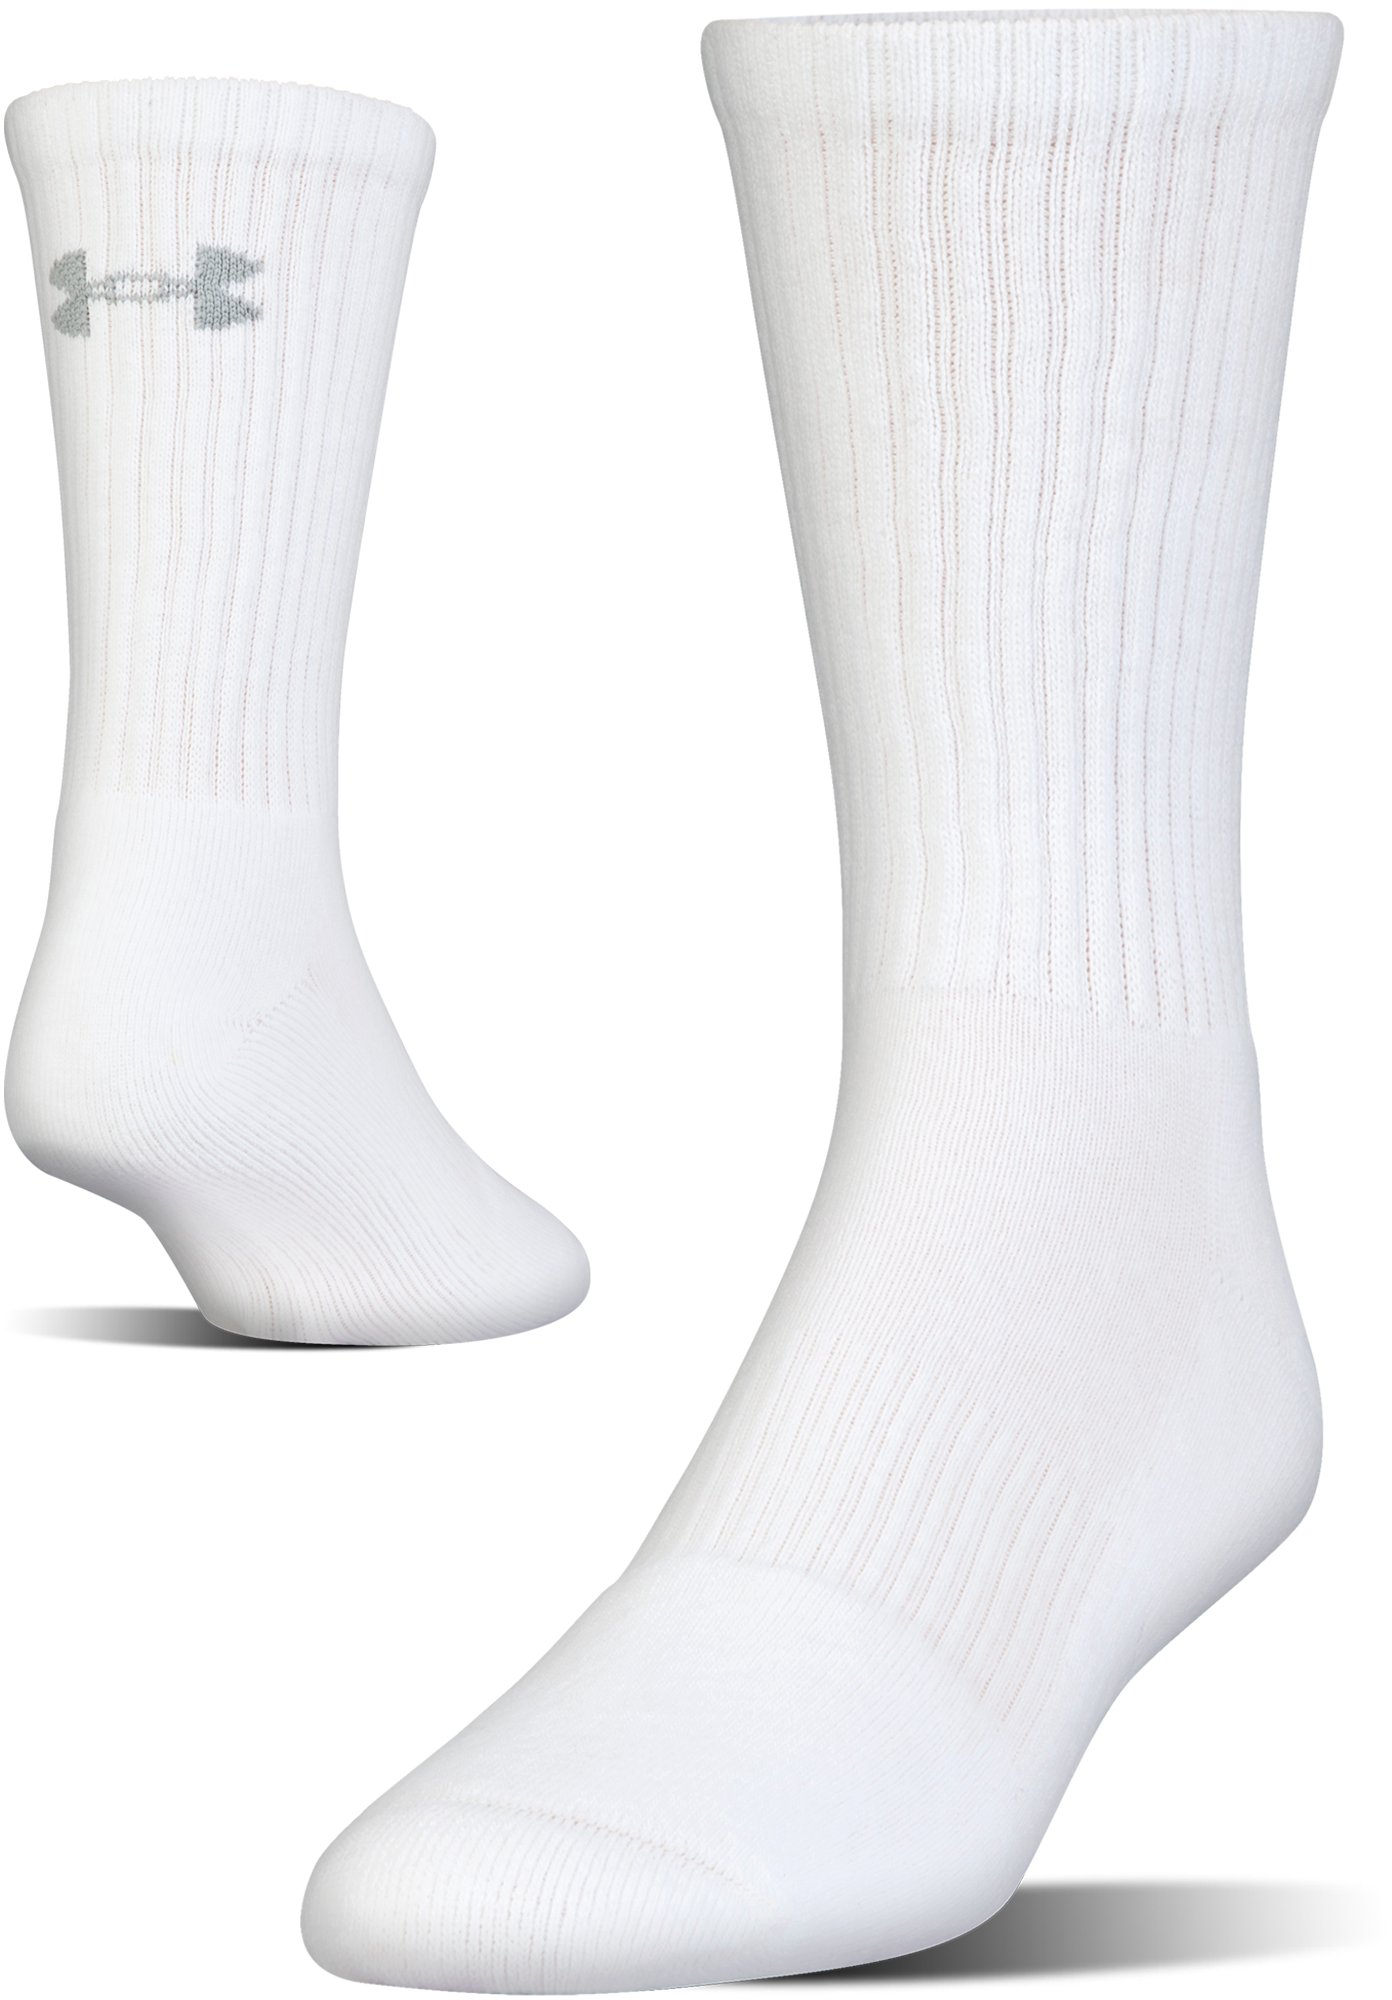 UA Charged Cotton® 2.0 Crew Socks – 6-Pack, White